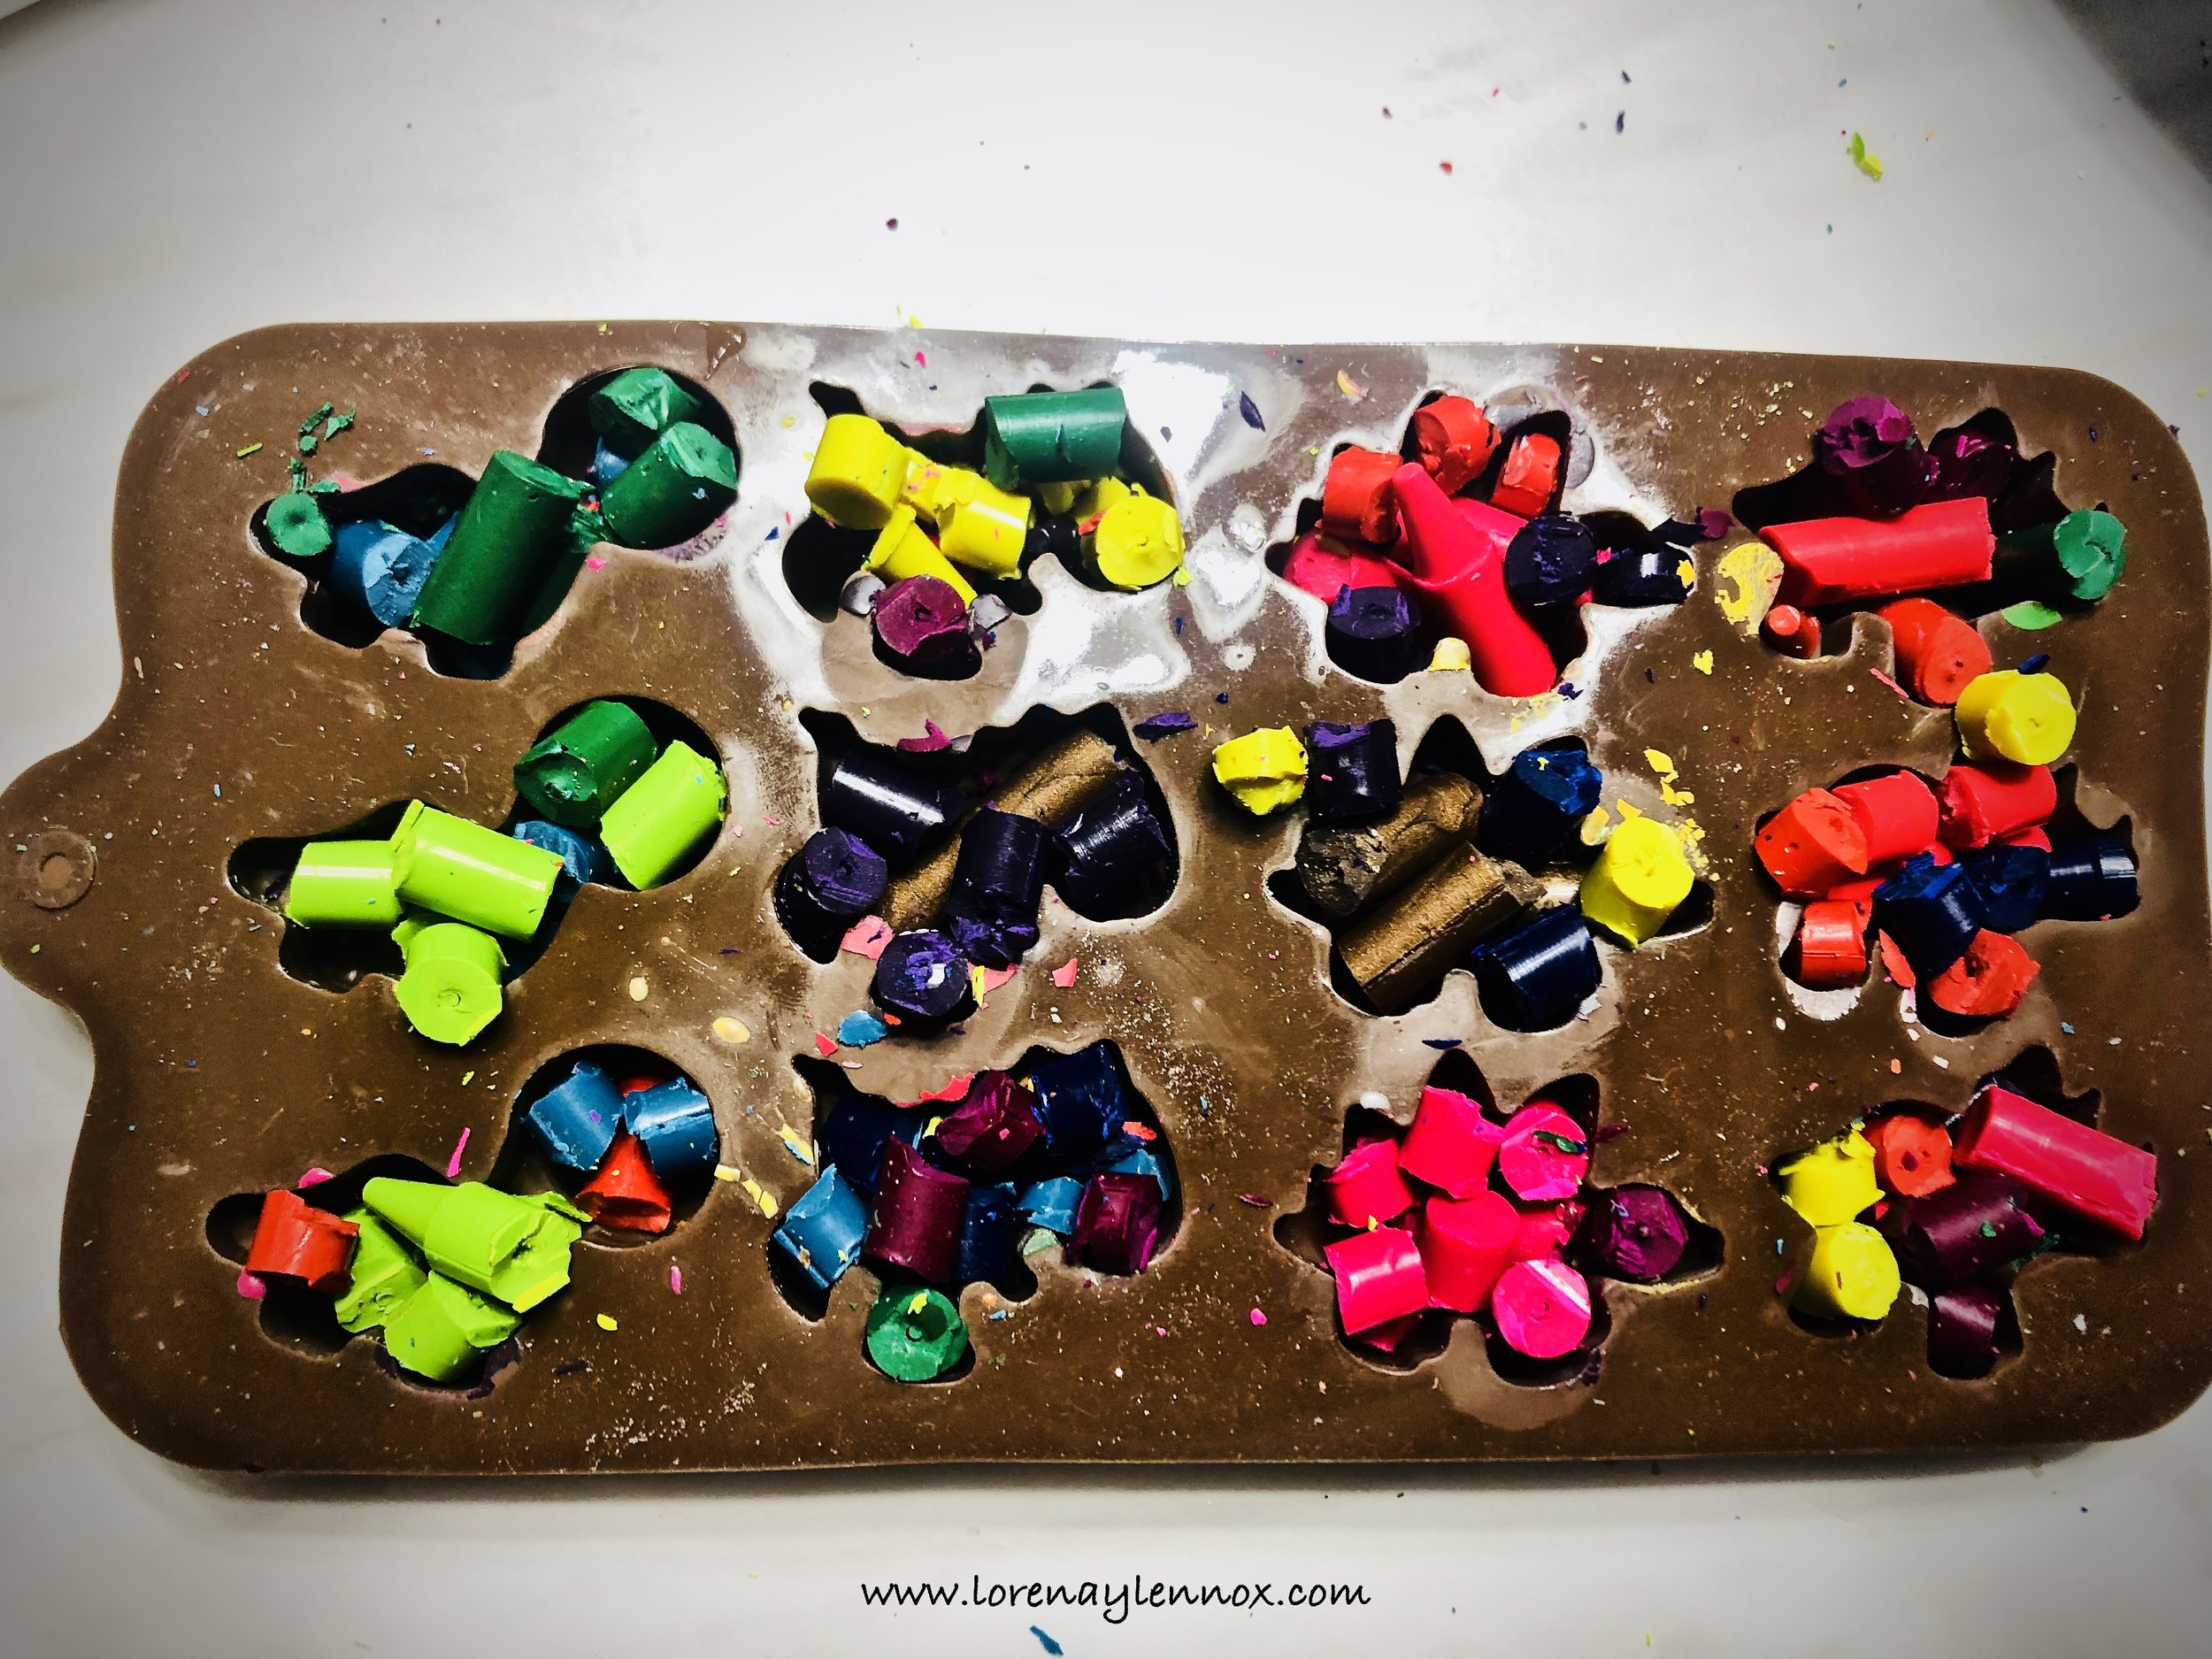 Fill your molds up as much as possible. With the crayon debris, I filled in the extra nooks and crannies.